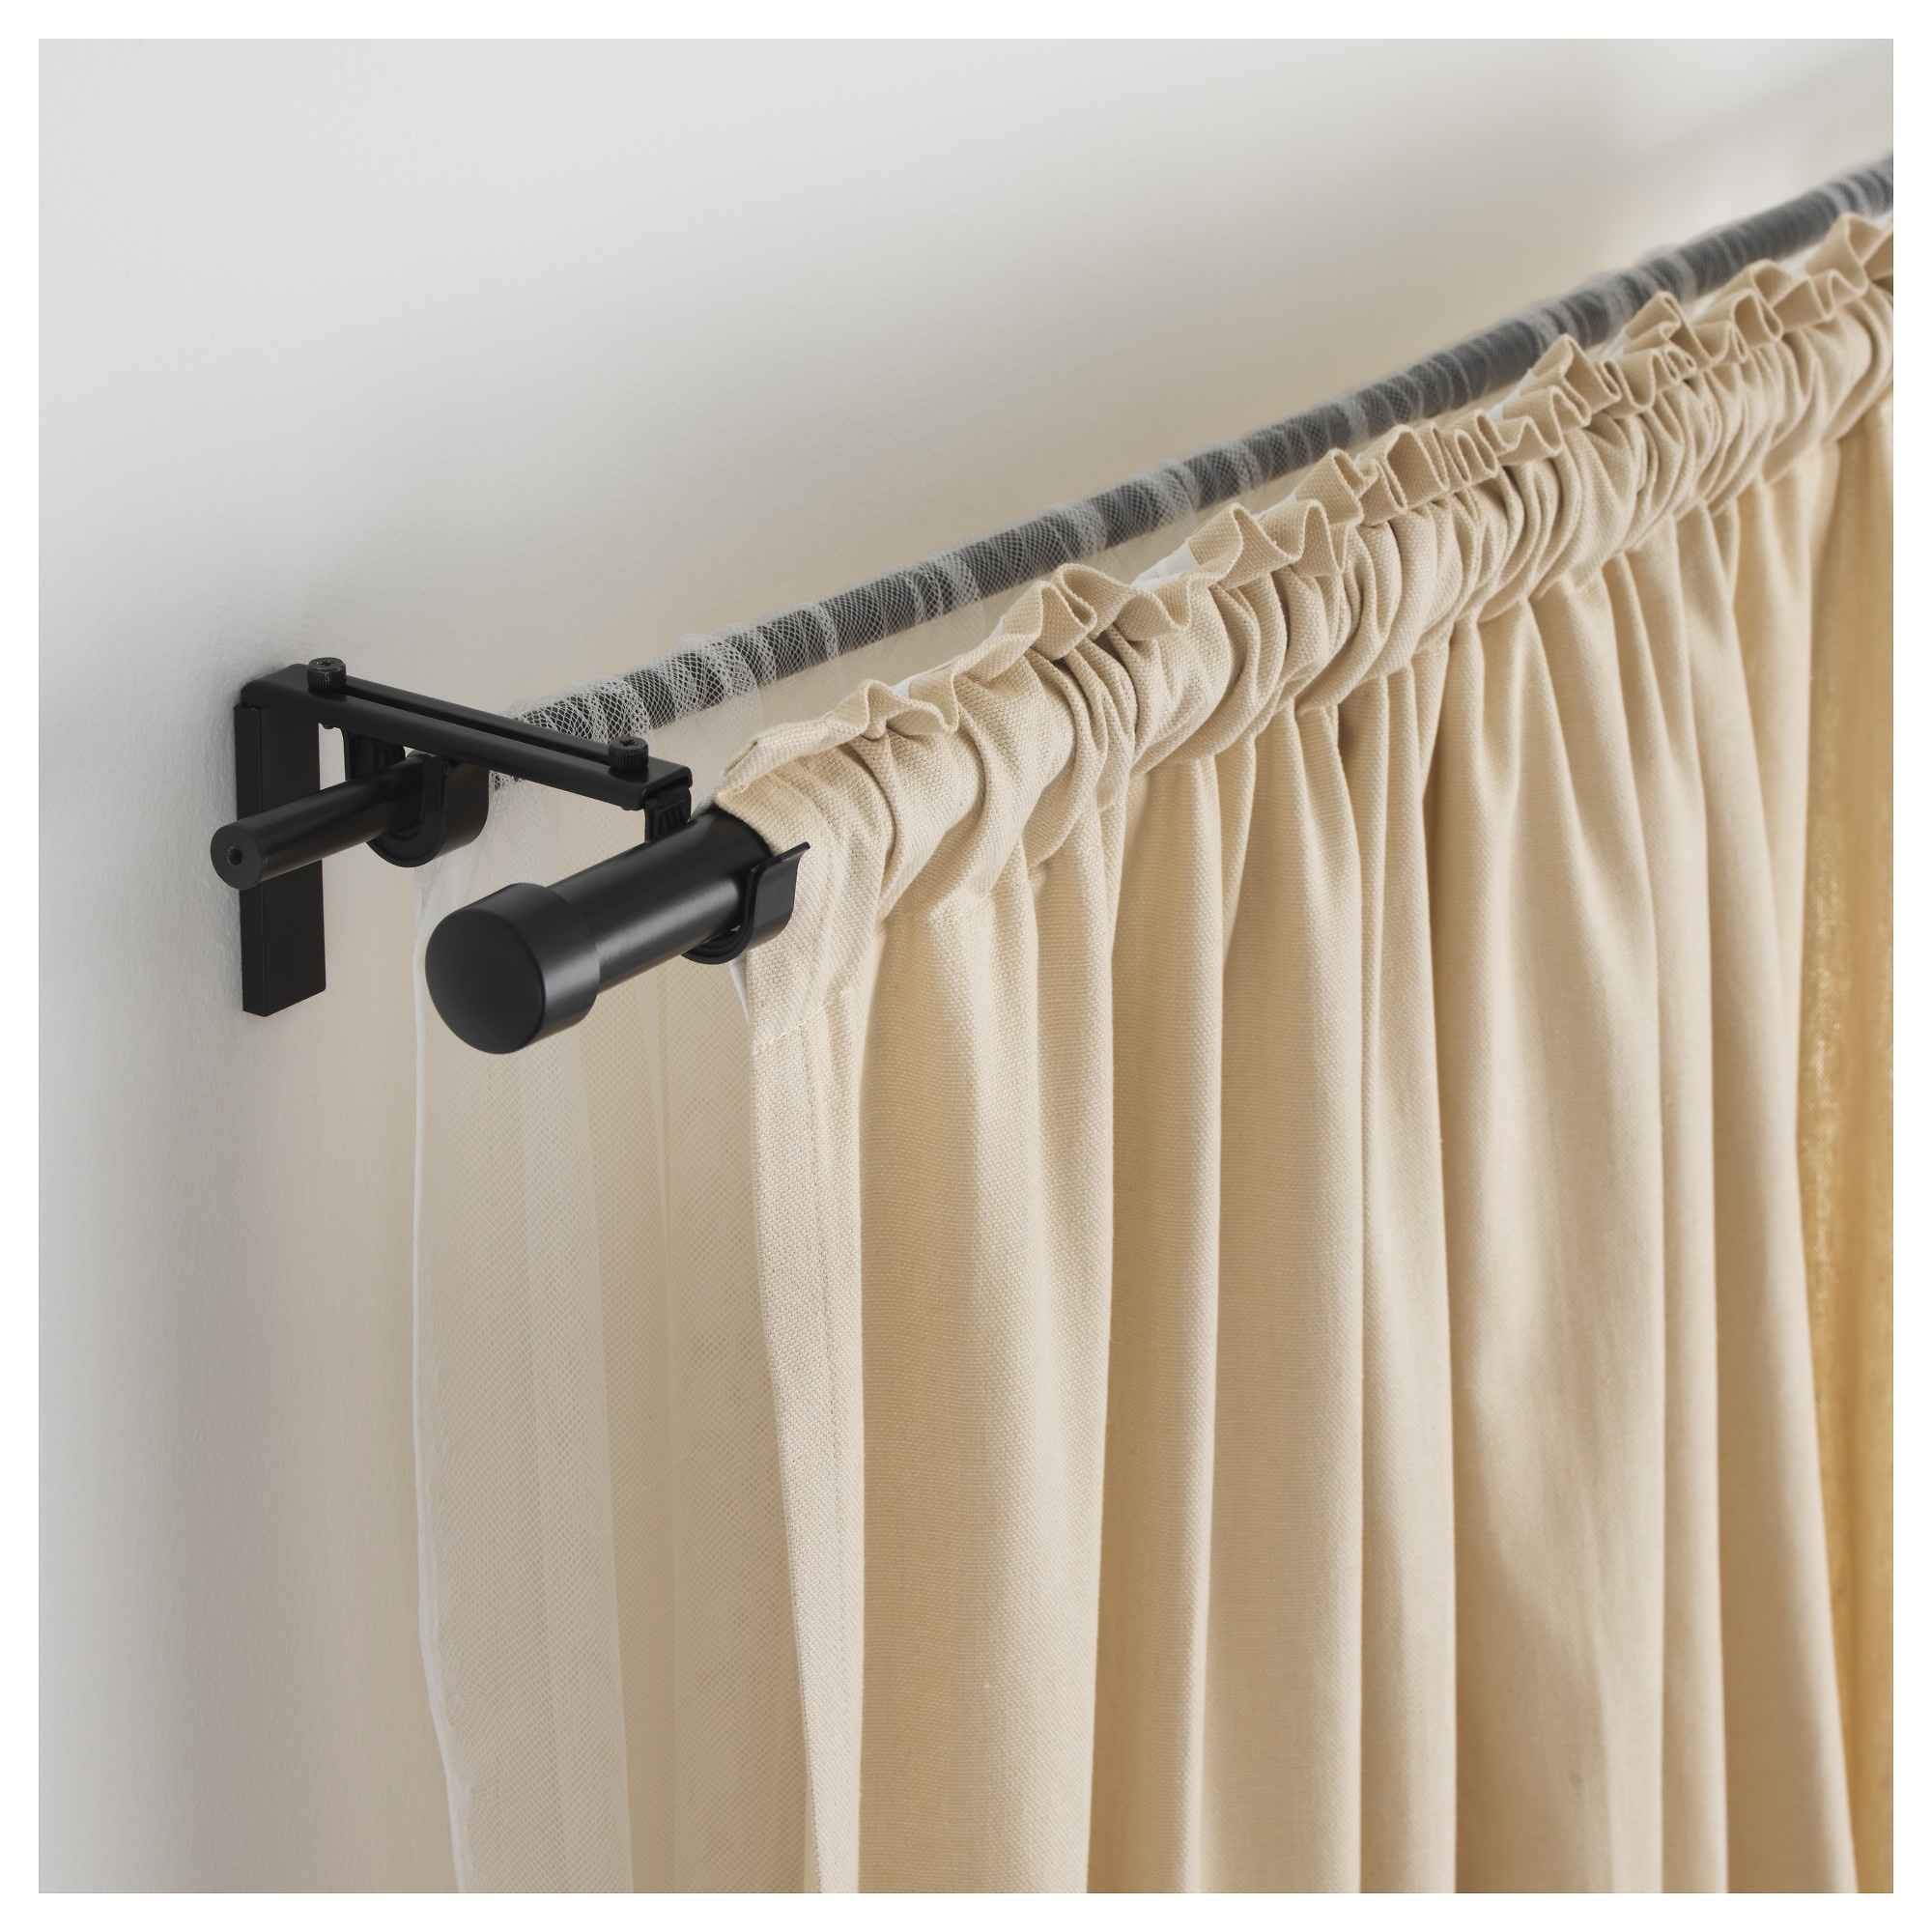 RÄCKA / HUGAD Double Curtain Rod Combination   IKEA